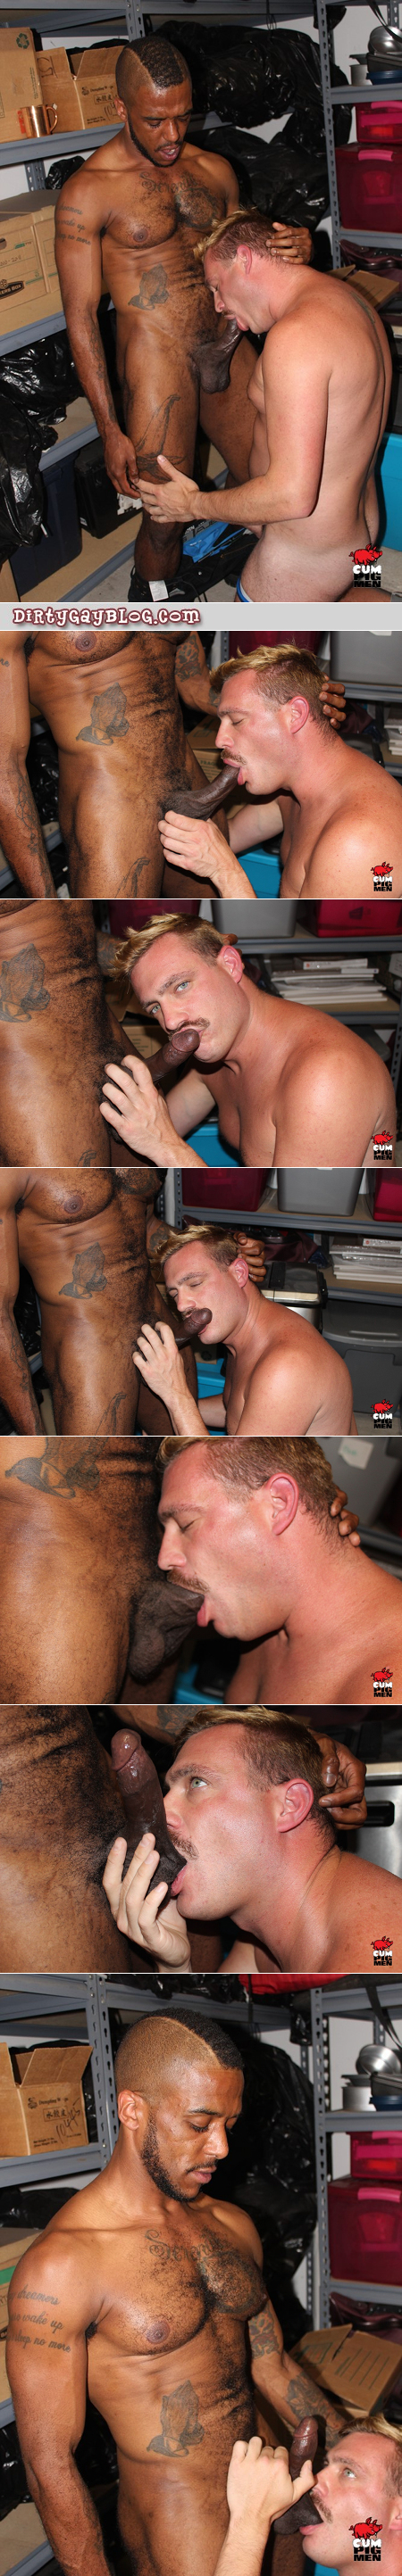 Blonde mustached faggot sucking blatino cock in the storage closet.